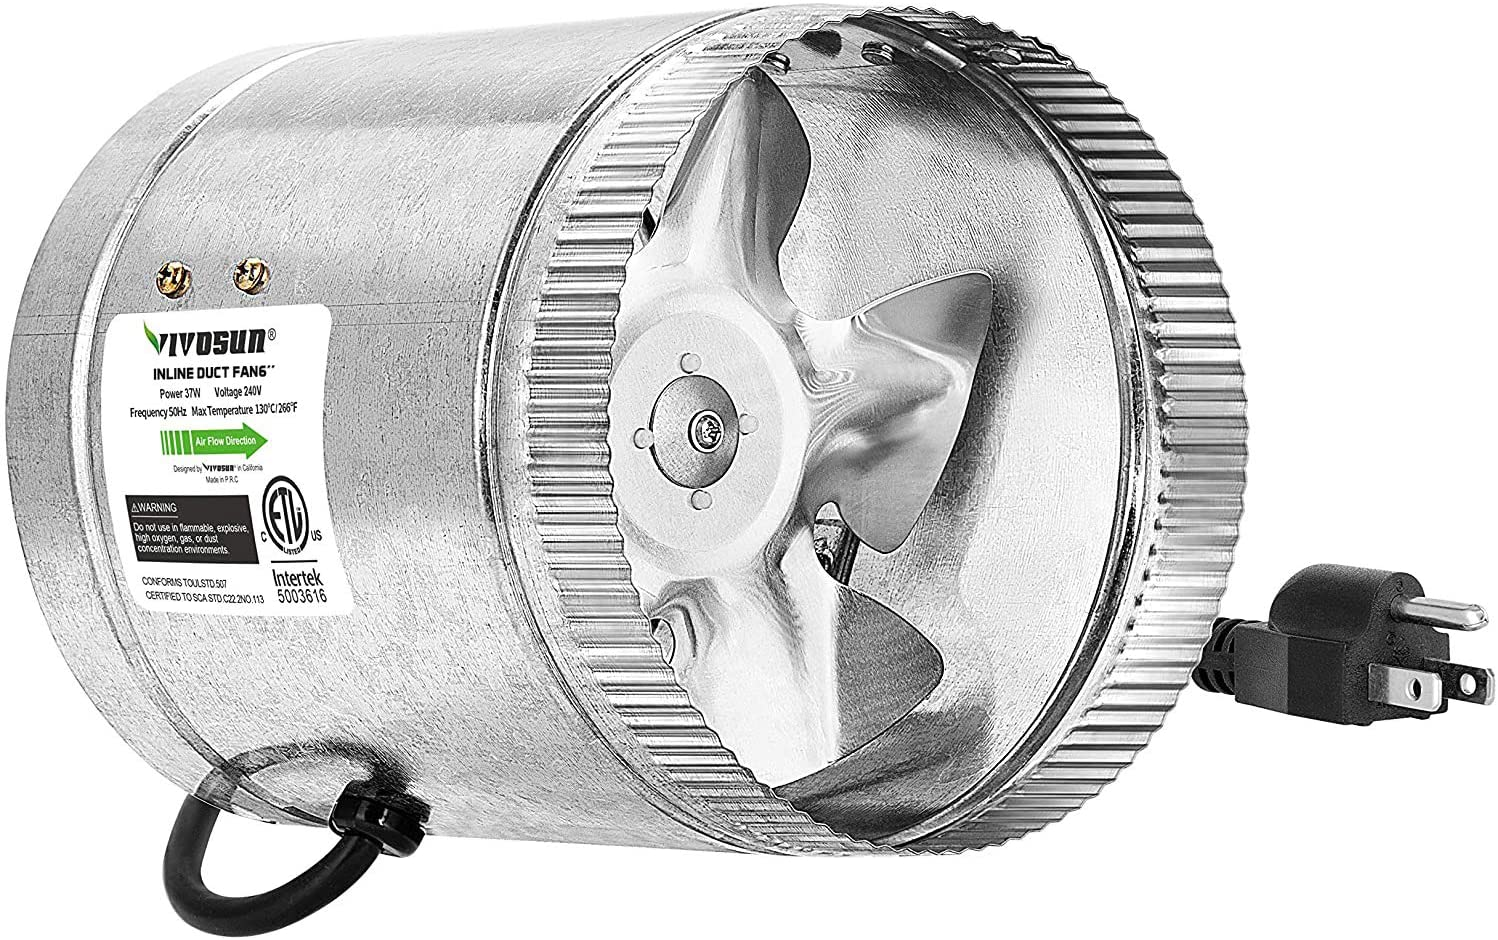 6 inch inline duct fan 240 cfm hvac exhaust intake fan low noise extra long 5 5 grounded power cord